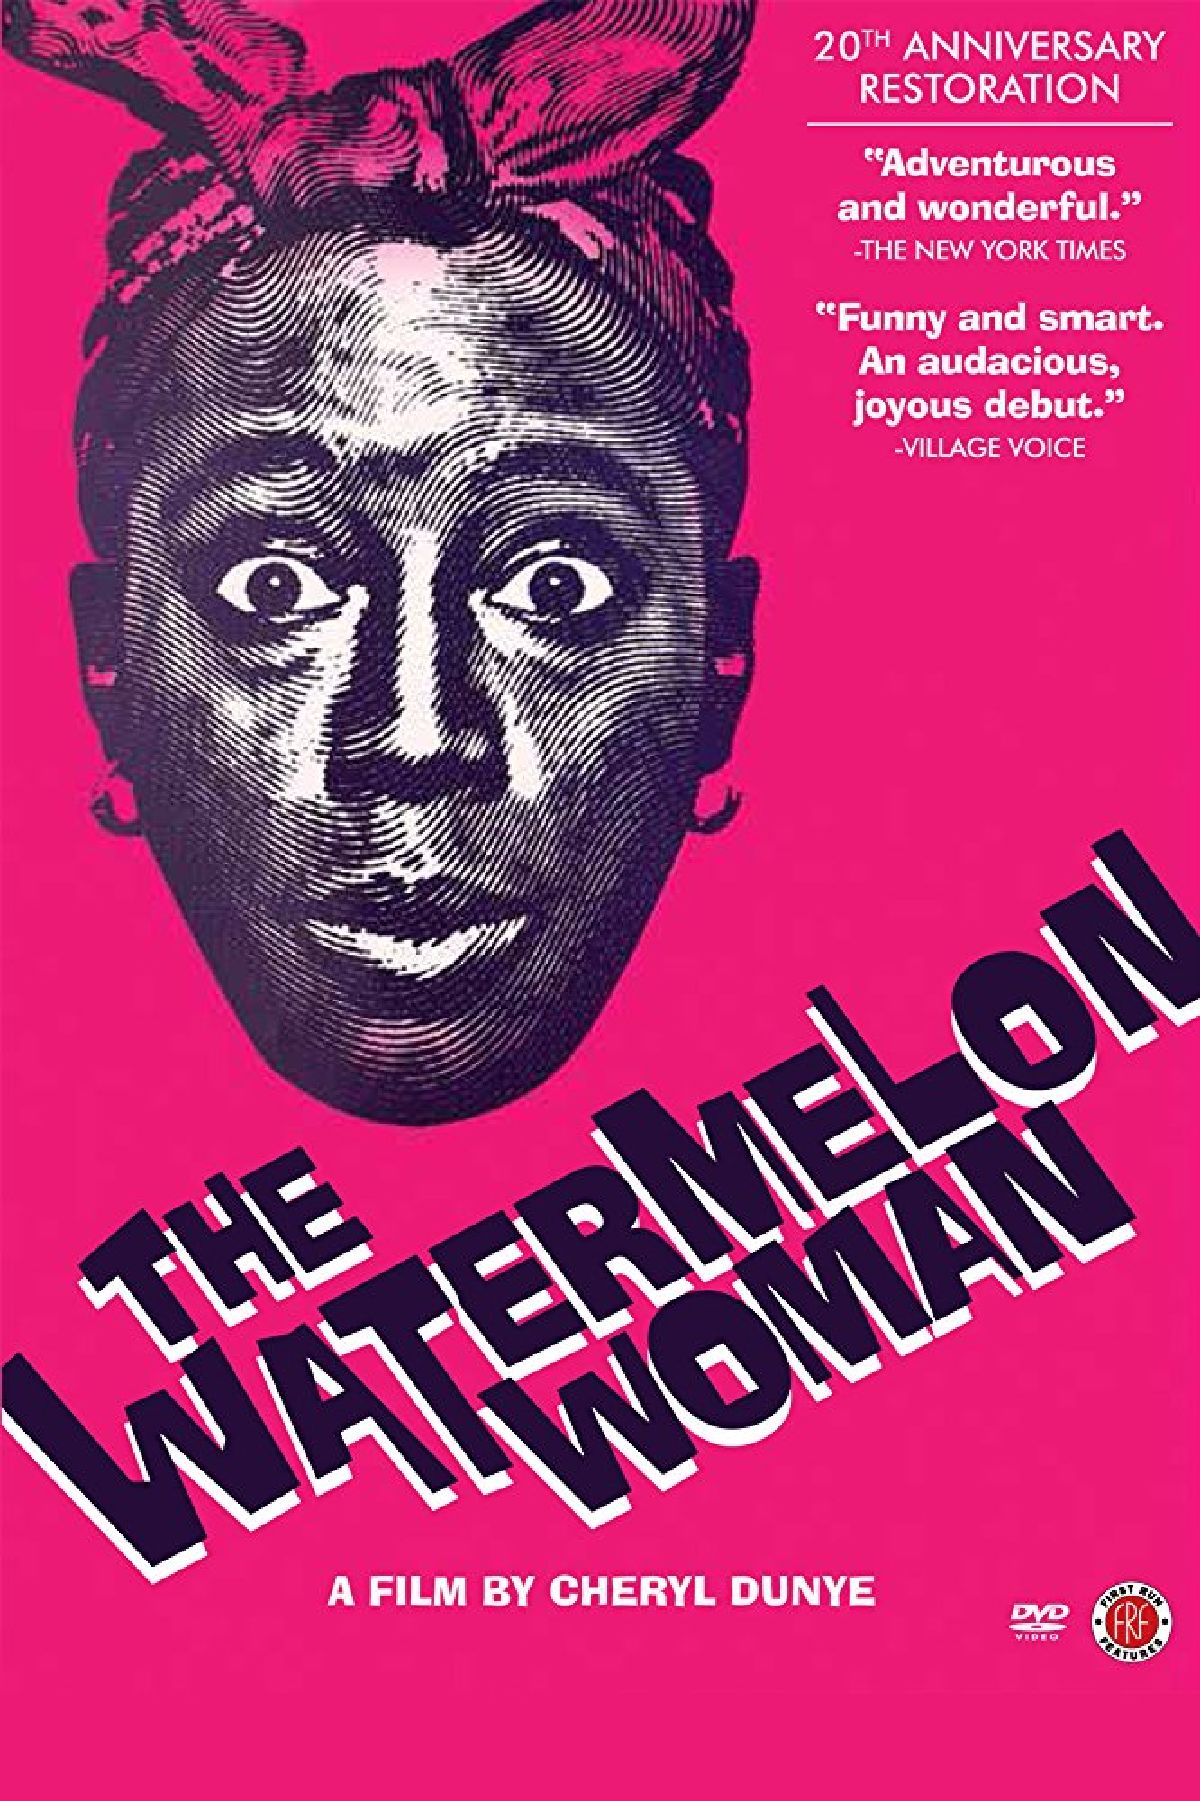 'The Watermelon Woman' movie poster